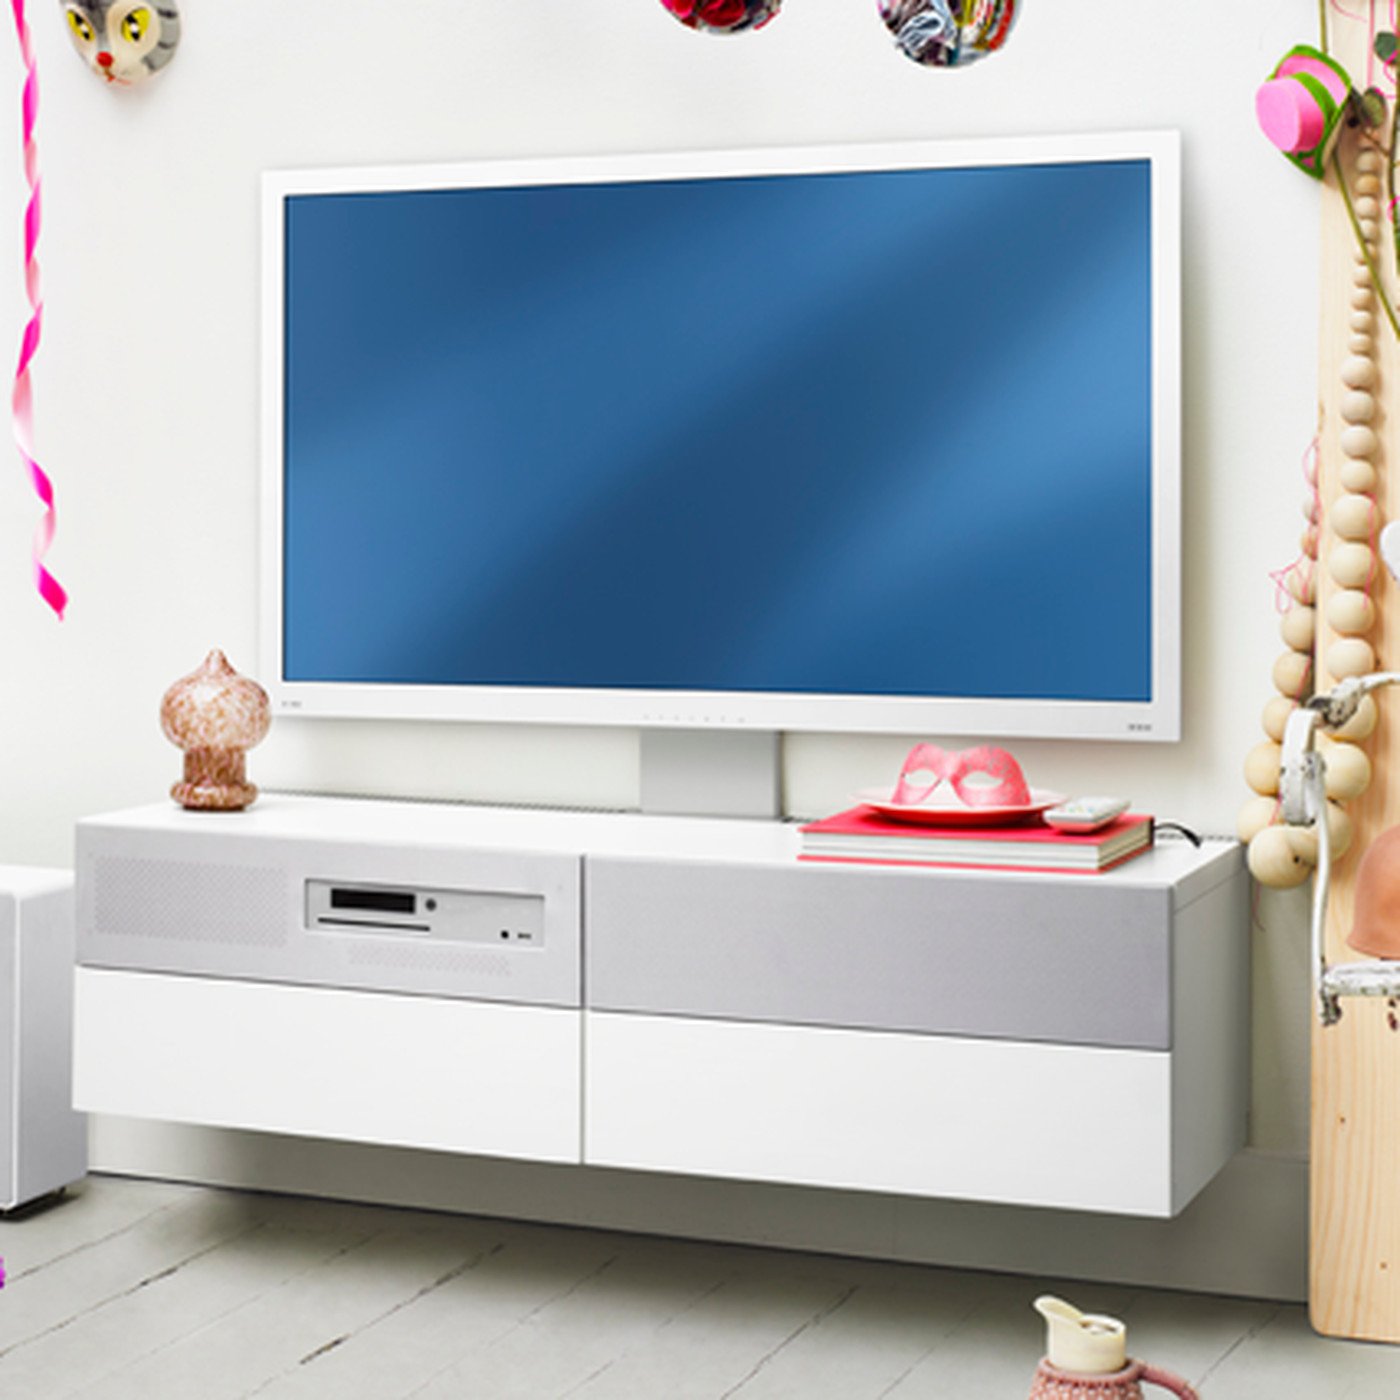 Full Size of Ikea Led Panel Furniture With Integrated Tvs And Sound Systems Coming This Chesterfield Sofa Leder Deckenleuchte Schlafzimmer Betten Bei Braun Küche Kosten Wohnzimmer Ikea Led Panel